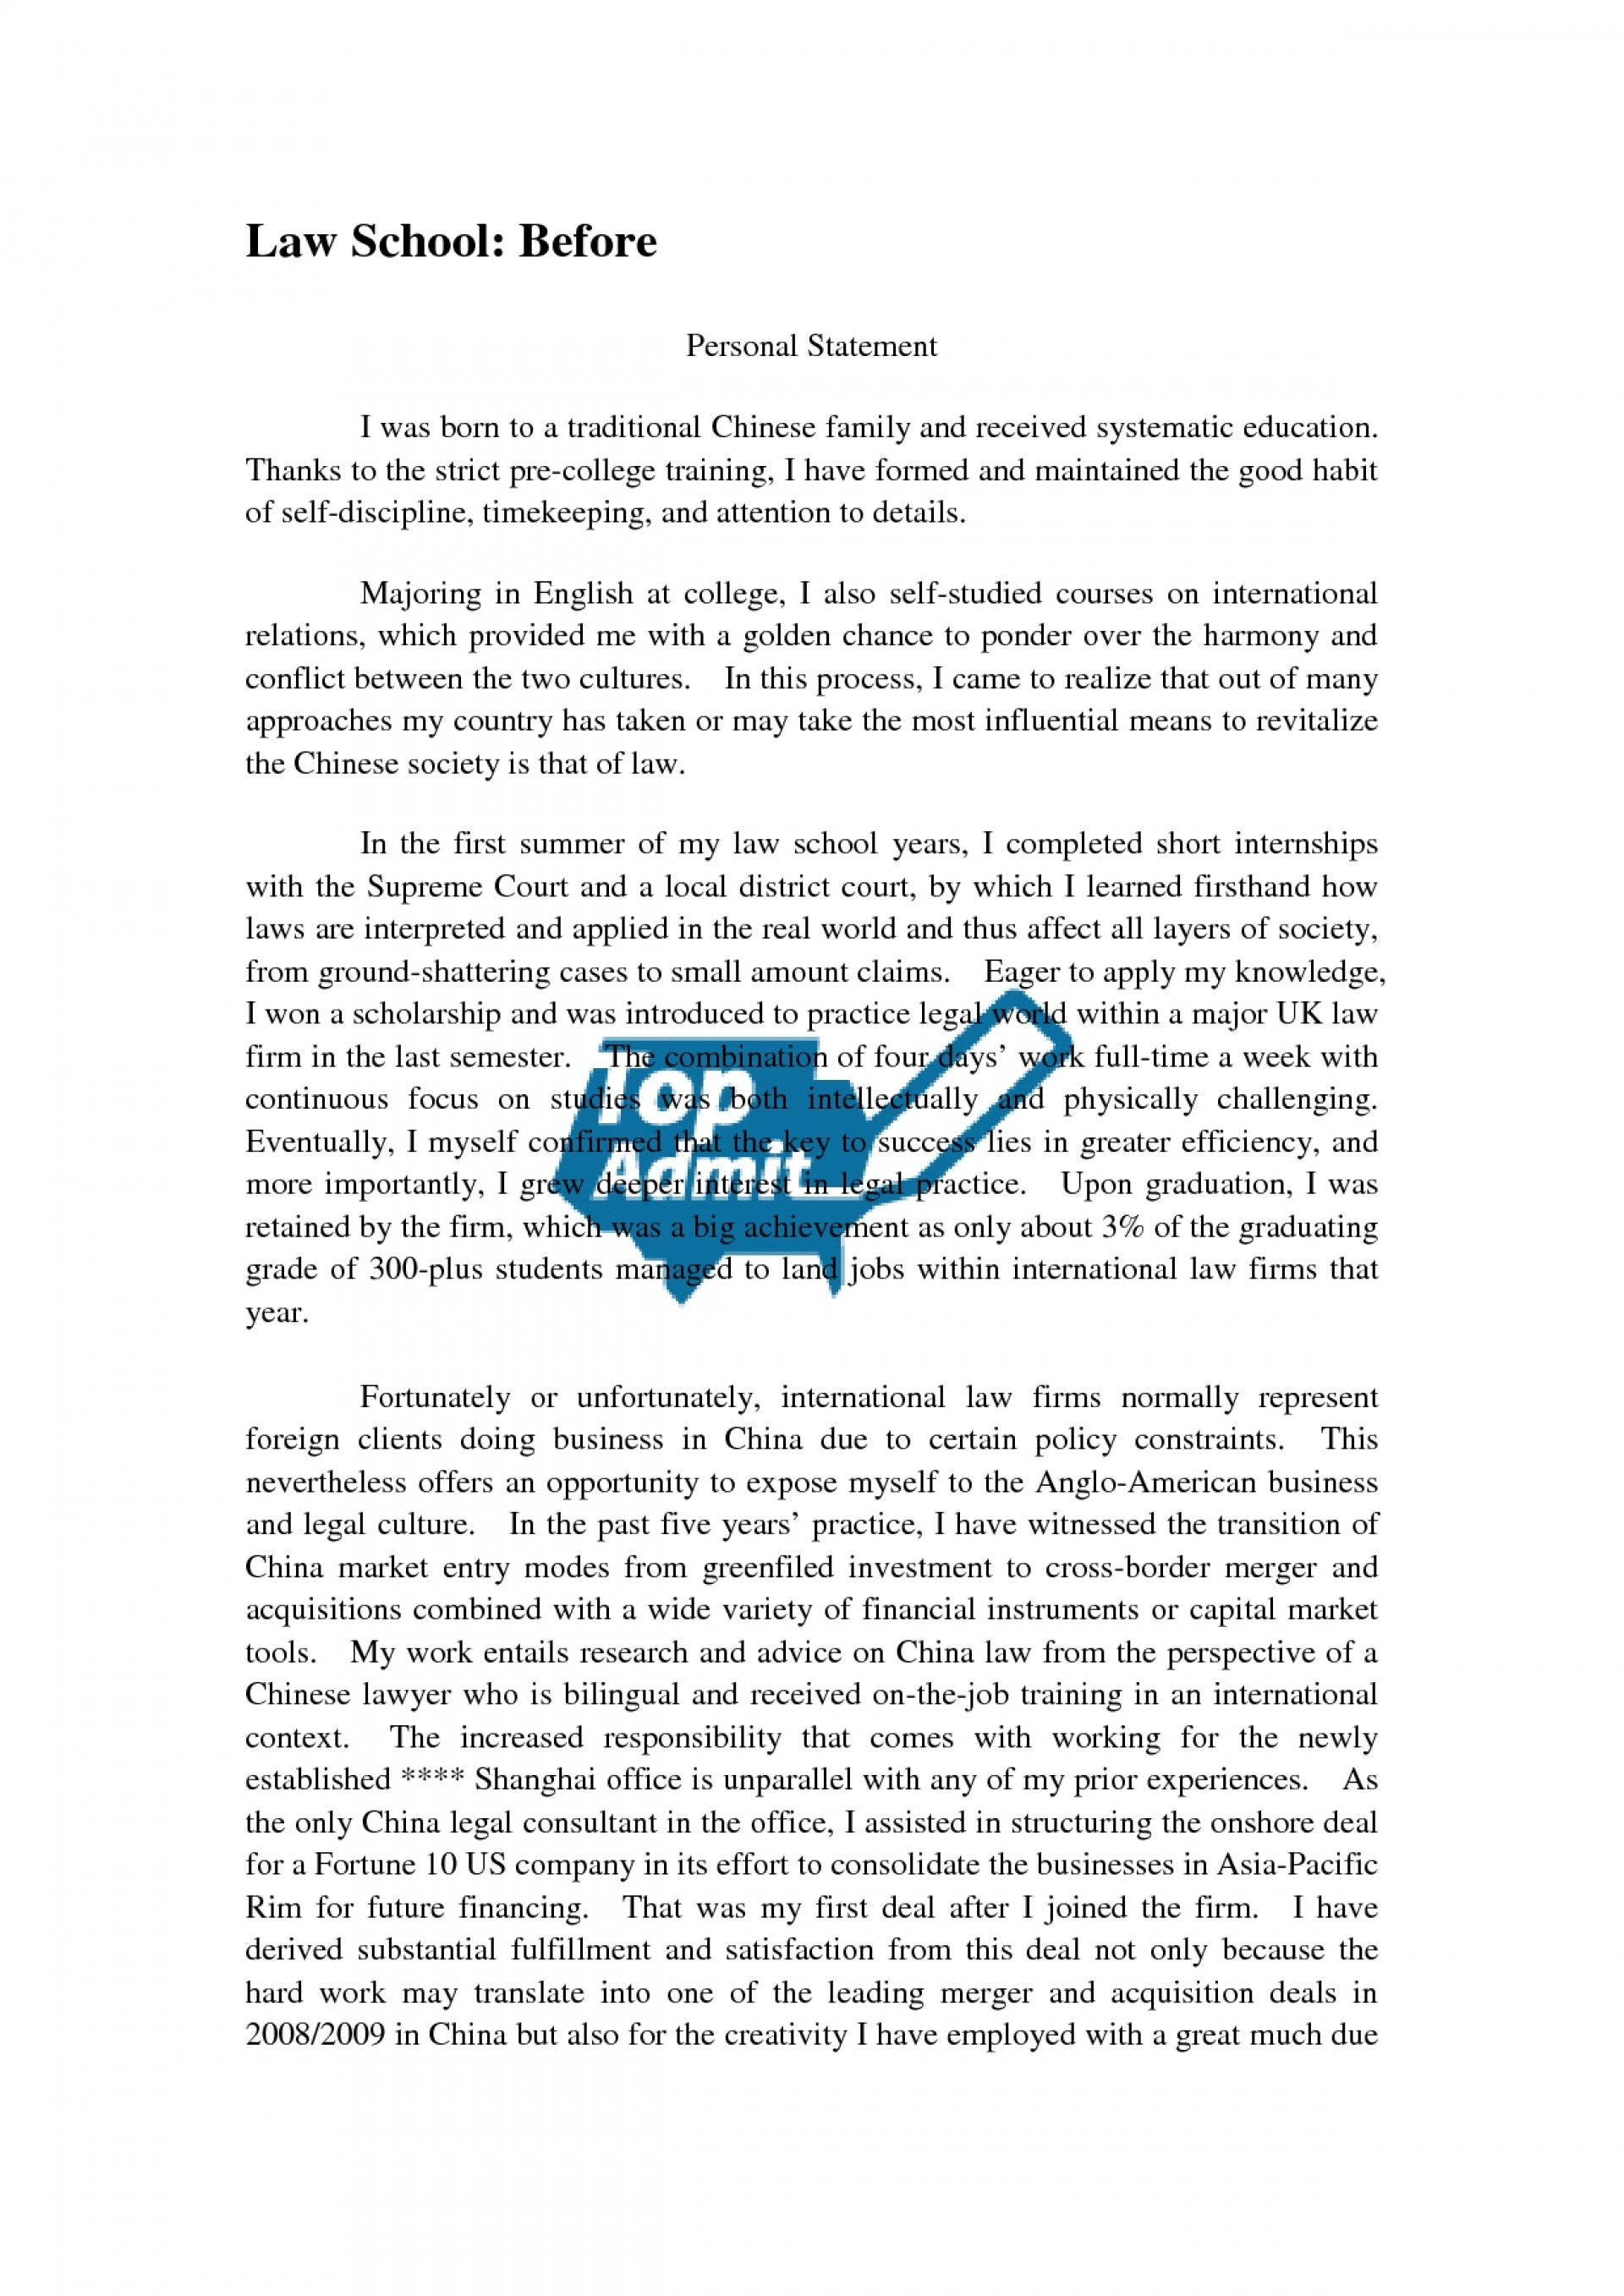 021 Essay For Graduate Admission Example Surprising Masters How To Write An Degree In Nursing 1920